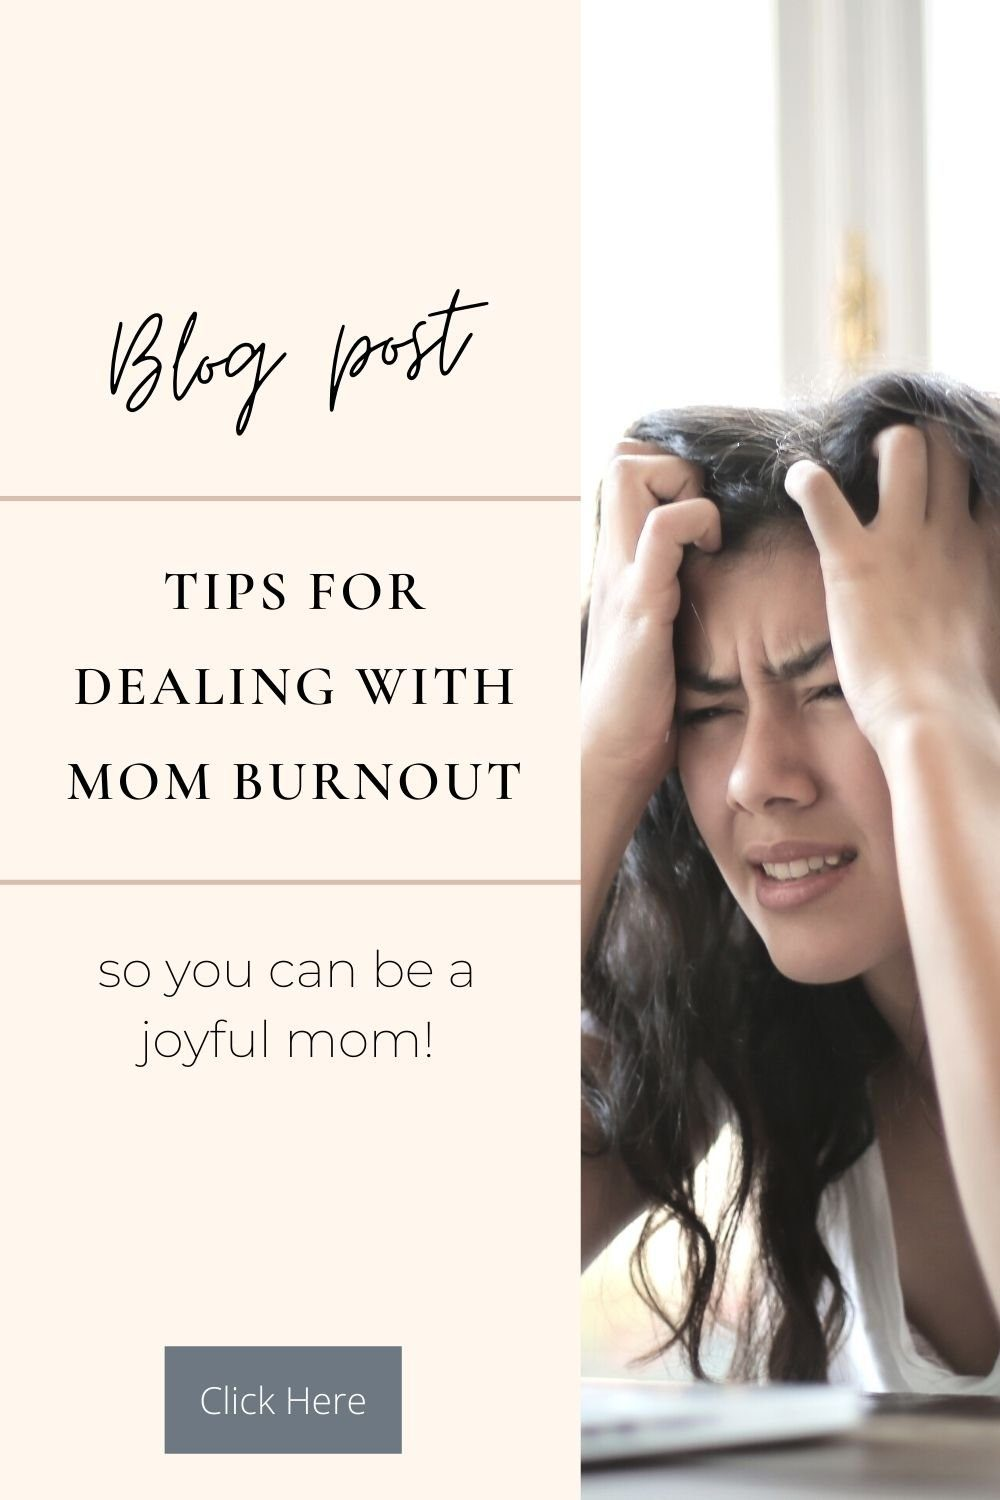 Tips for dealing with mom burnout